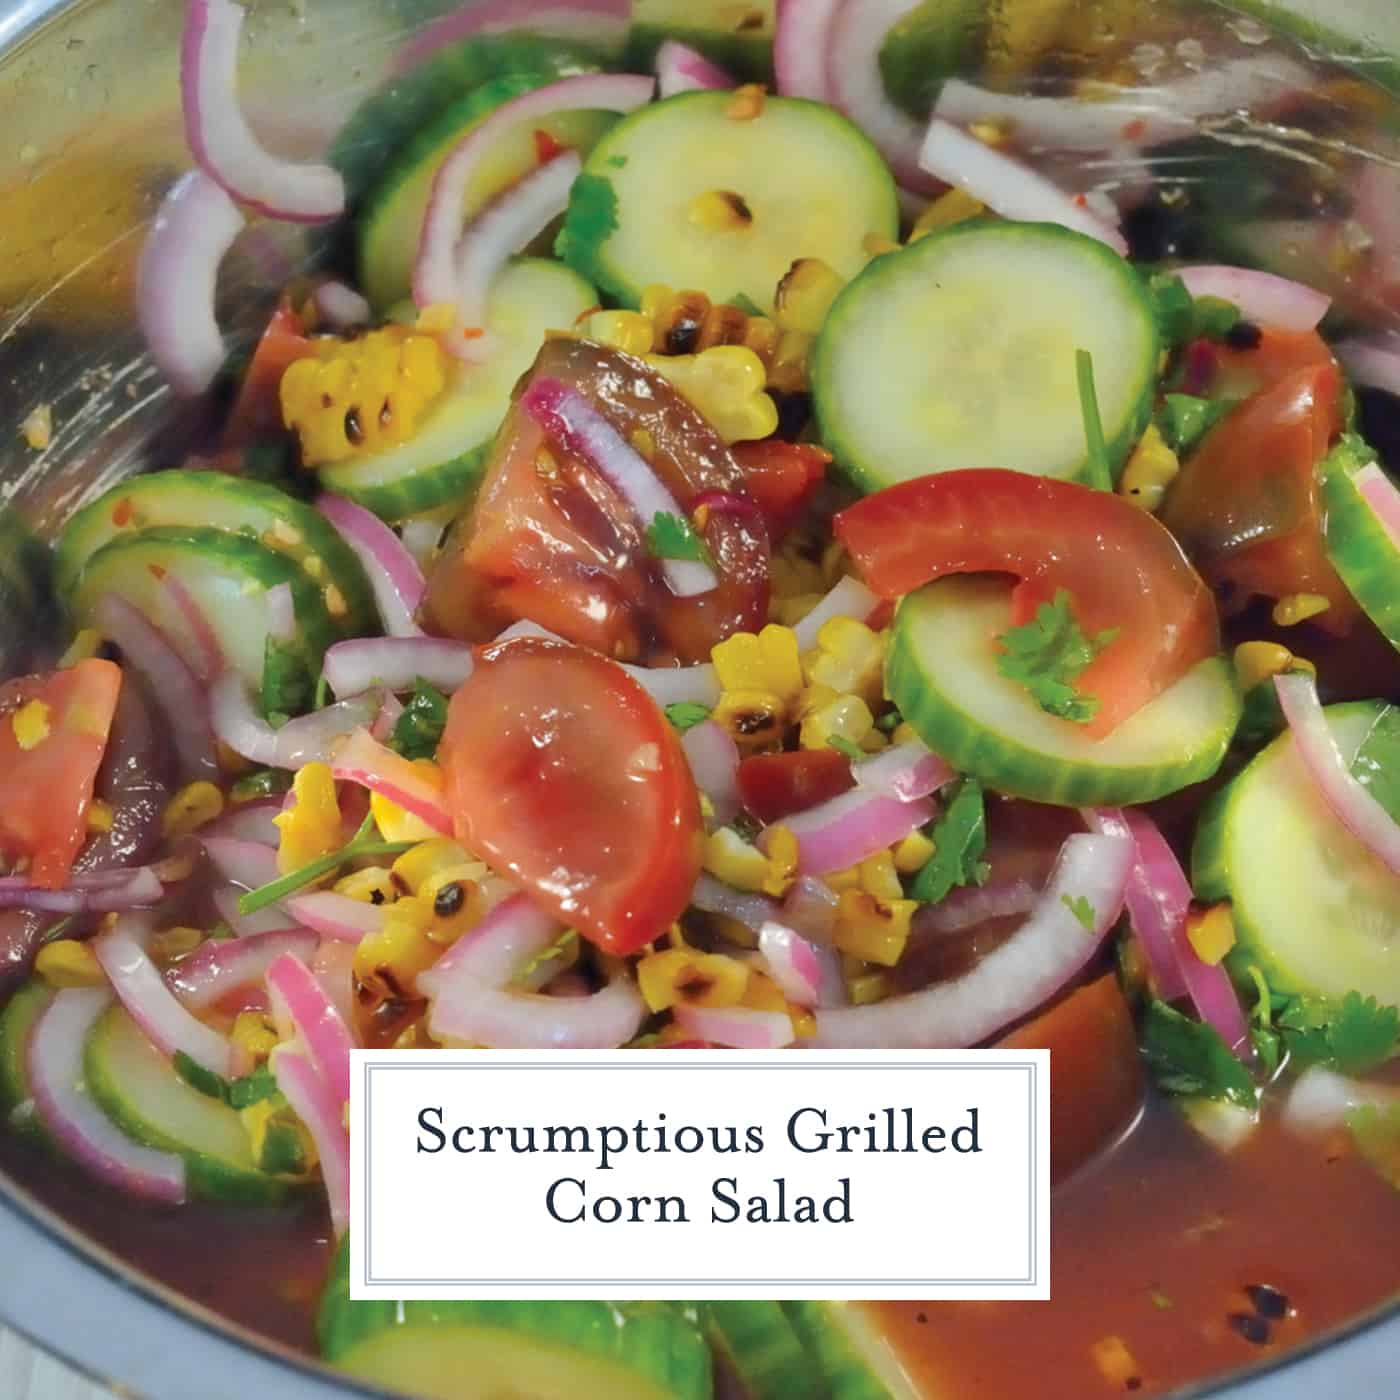 Grilled Corn Salad uses grilled corn, heirloom tomatoes, cucumber and red onion in a zesty homemade dressing. It will be your favorite summer salad! #grilledcornsalad #tomatosalad #summersalads www.savoryexperiments.com